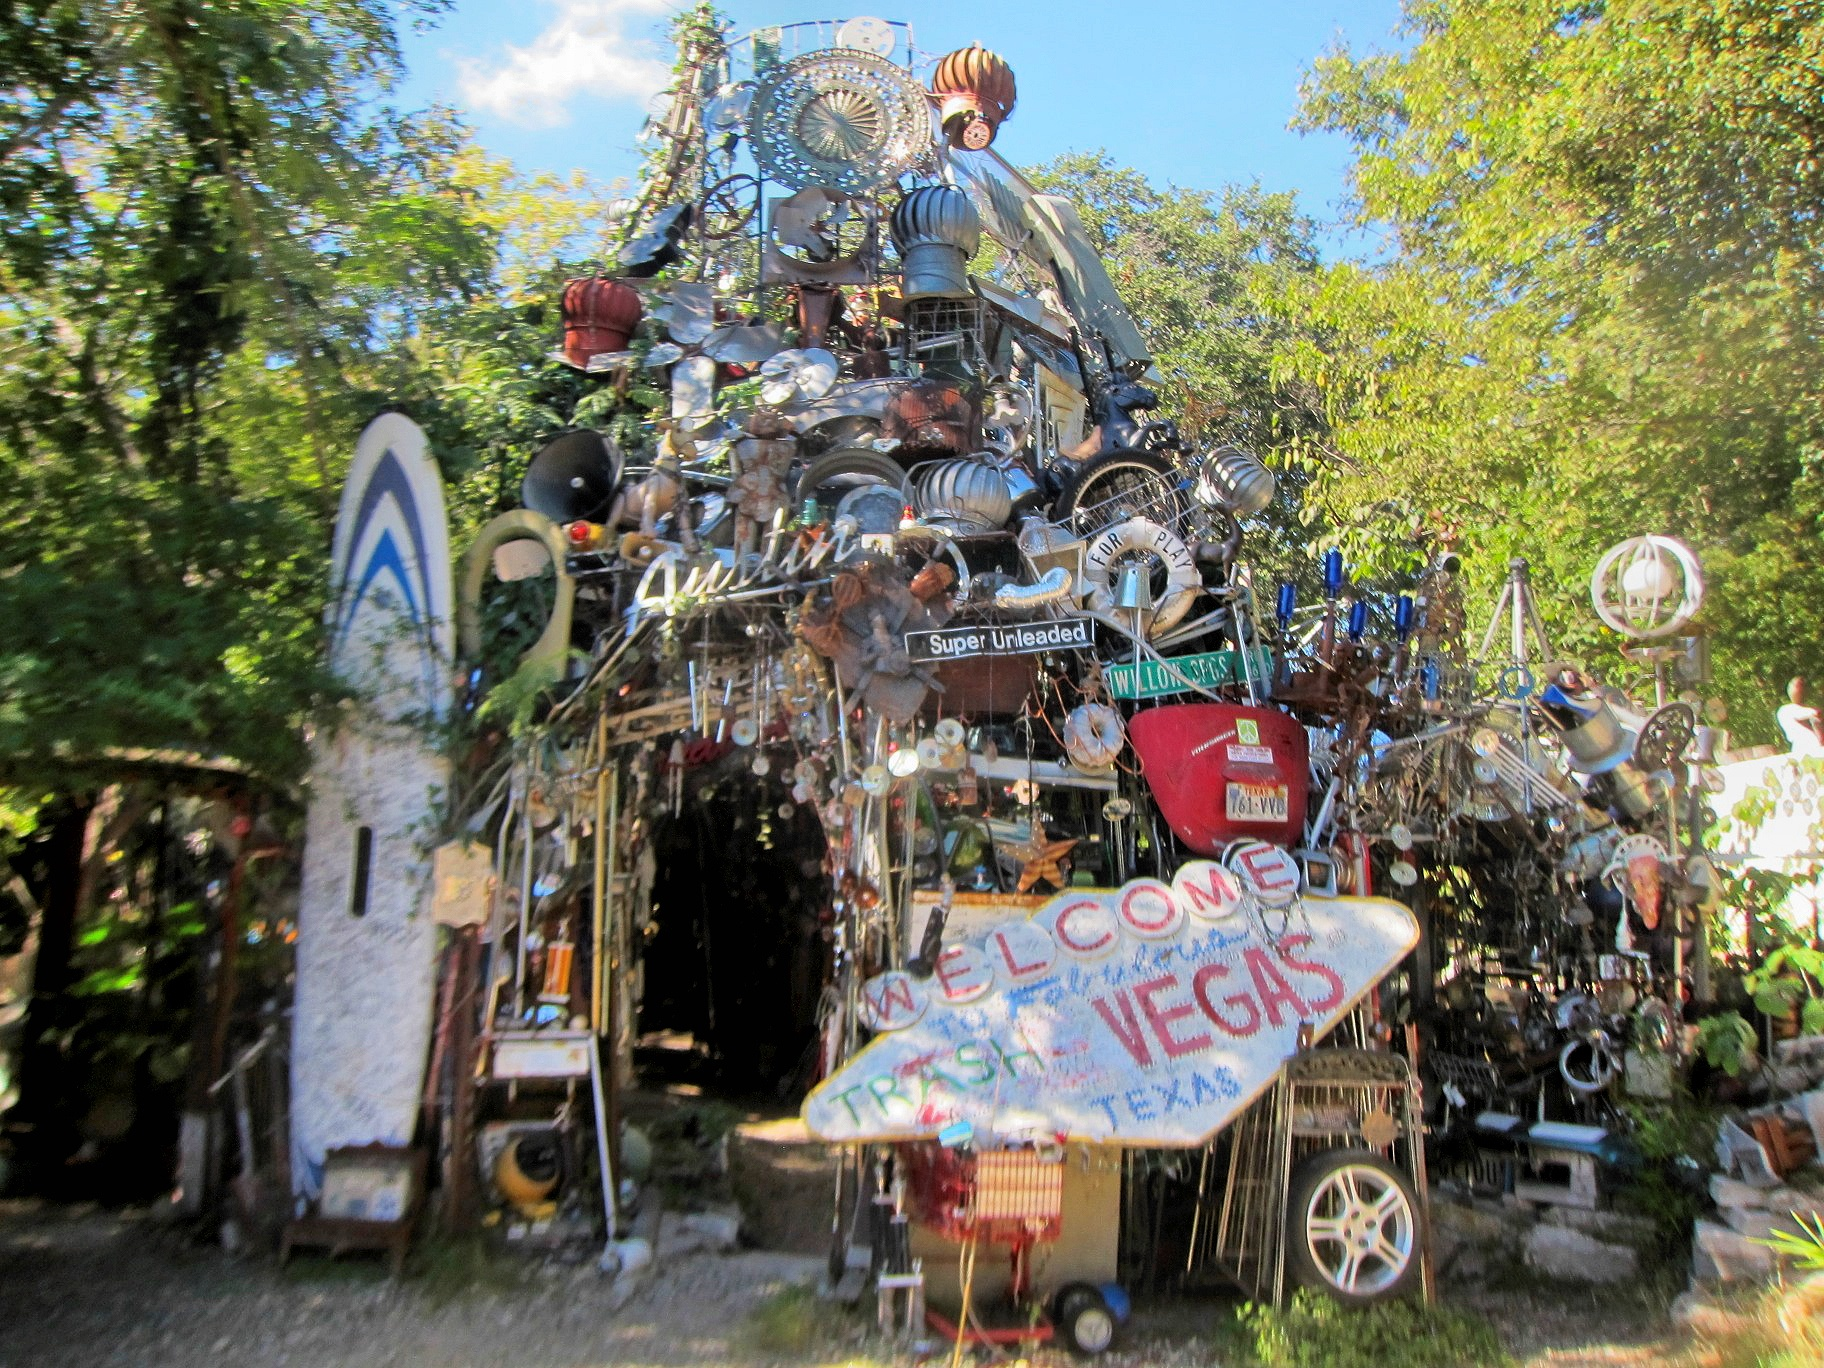 Cathedral of Junk Austin TX